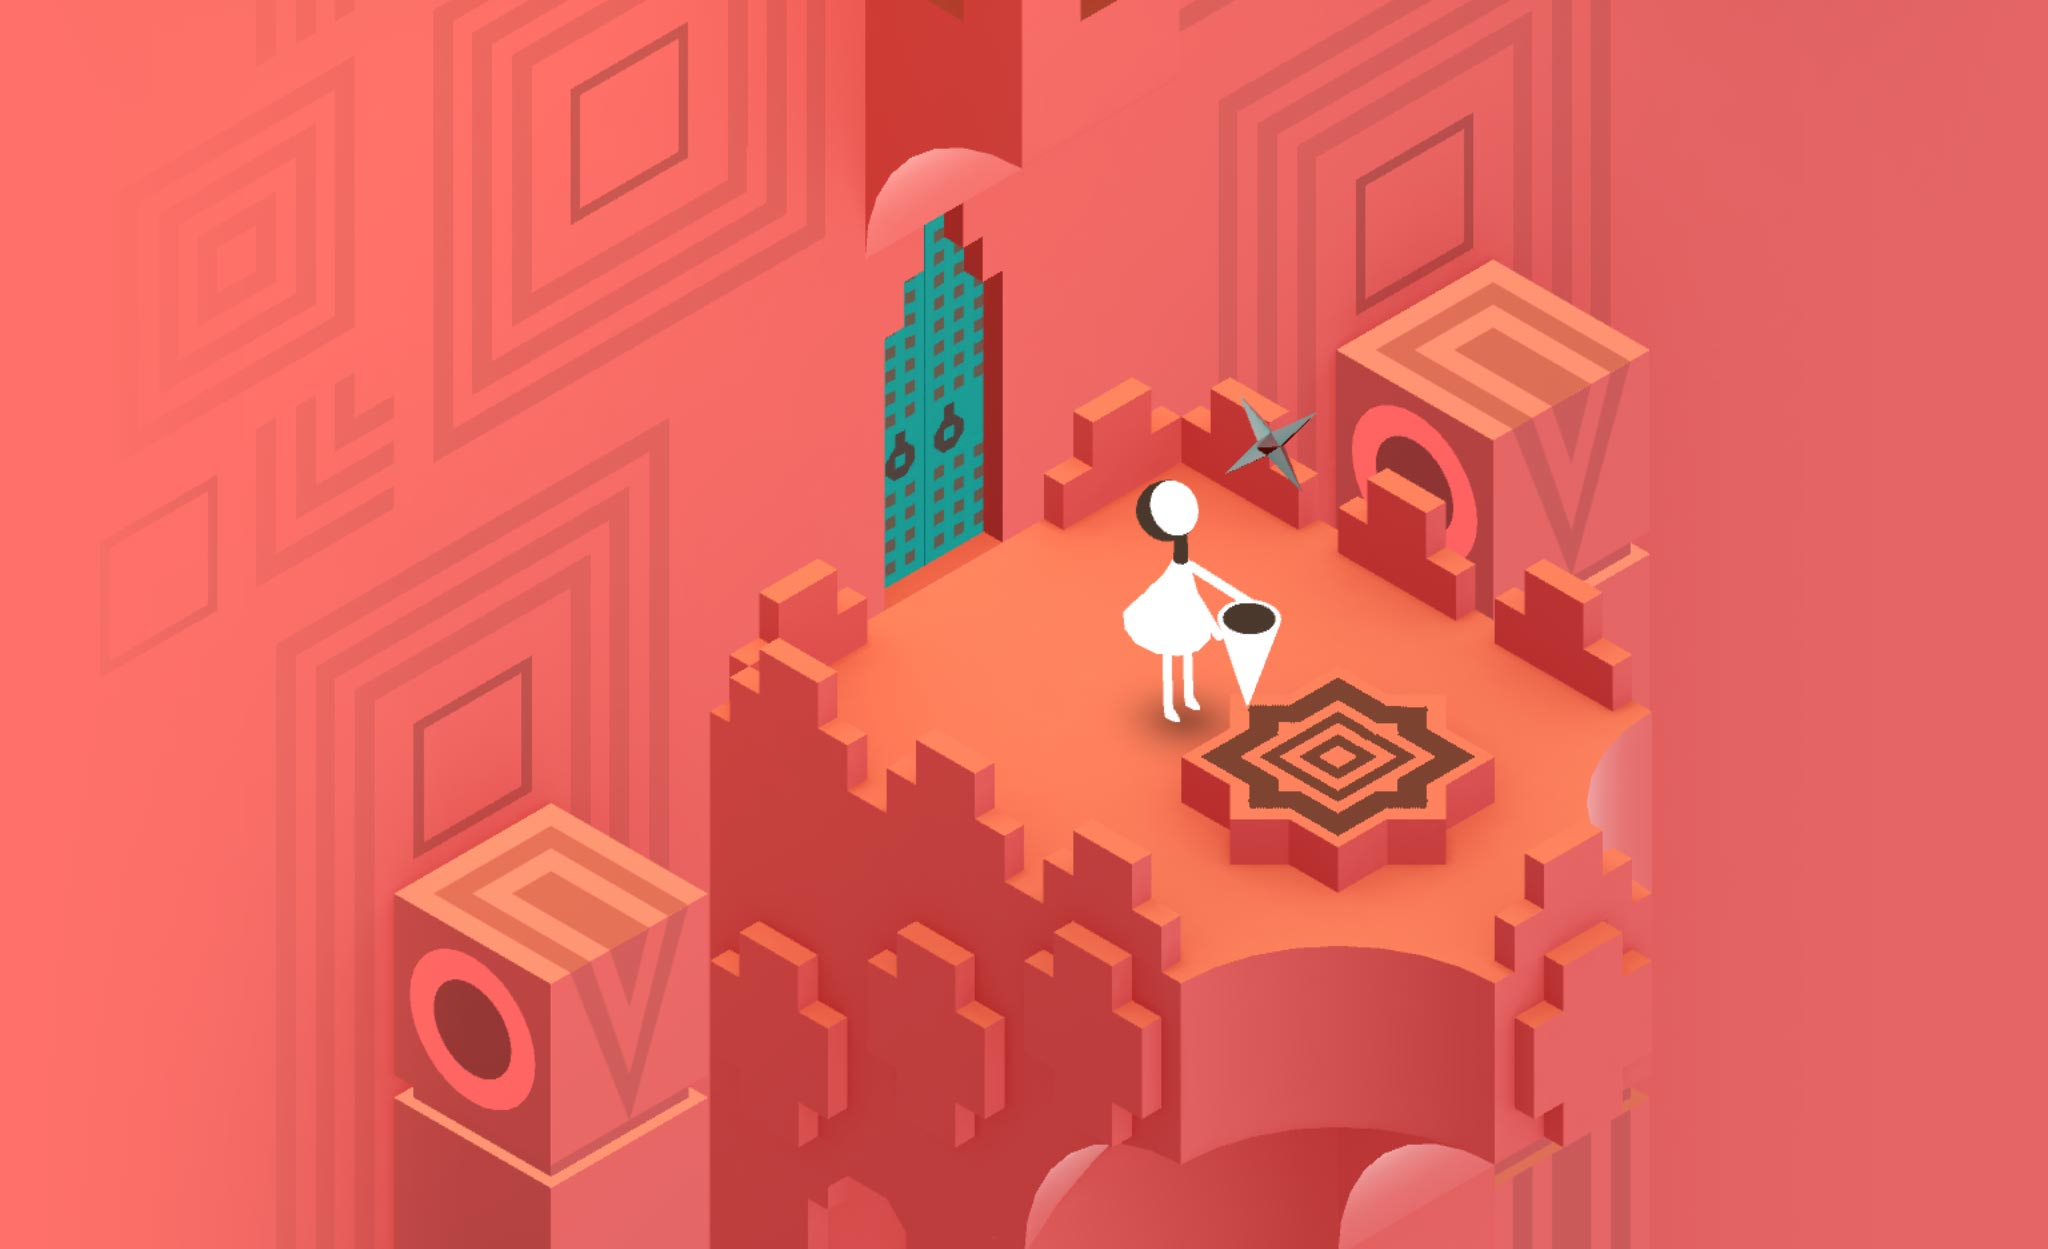 Download the Monument Valley Apk Mod for Free